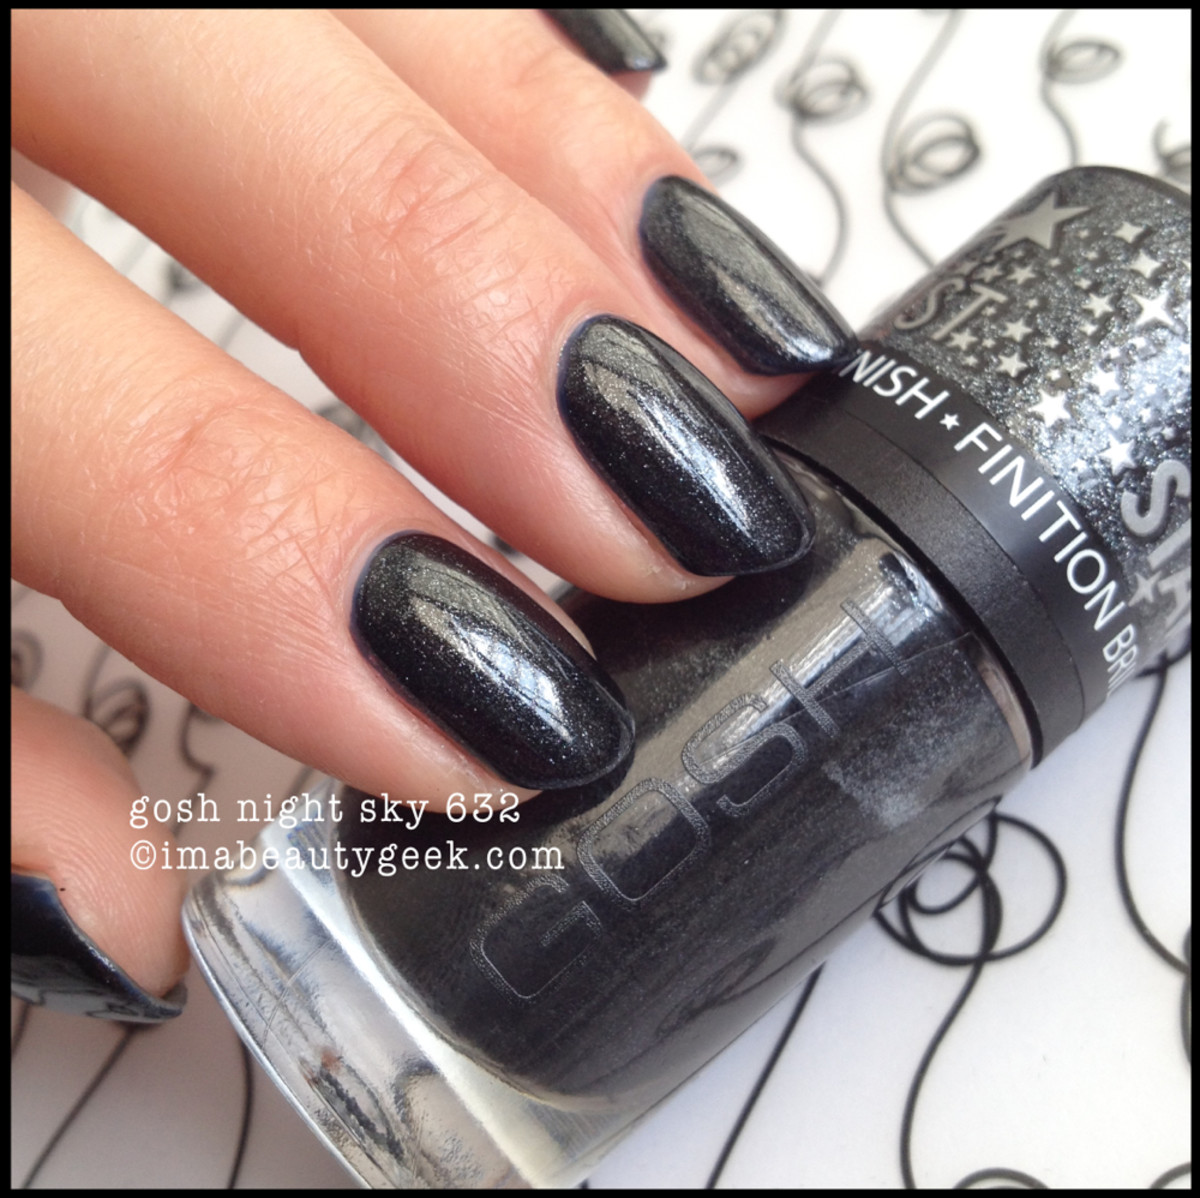 Gosh Polish Night Sky 632 2014beautygeeks